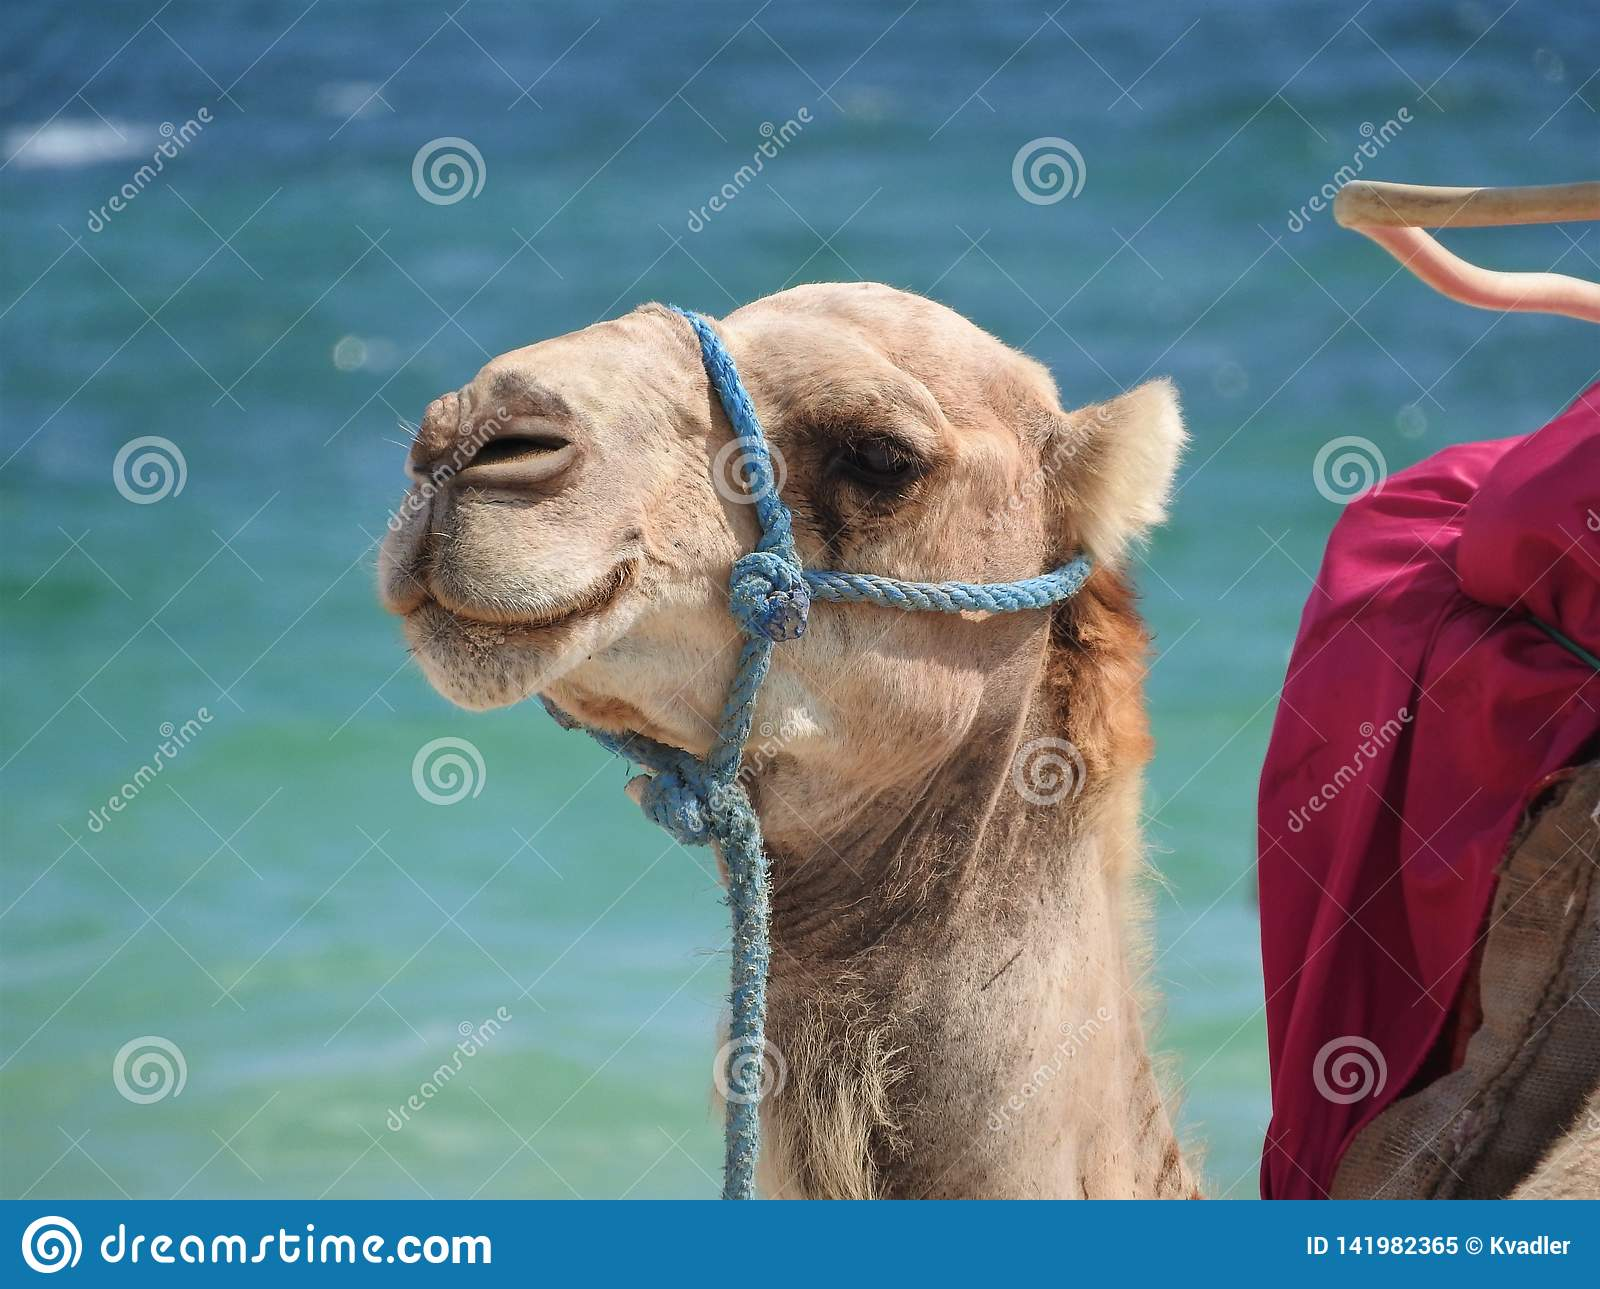 Camel on the beach in Tunisia, Africa on a clear day against the blue sea